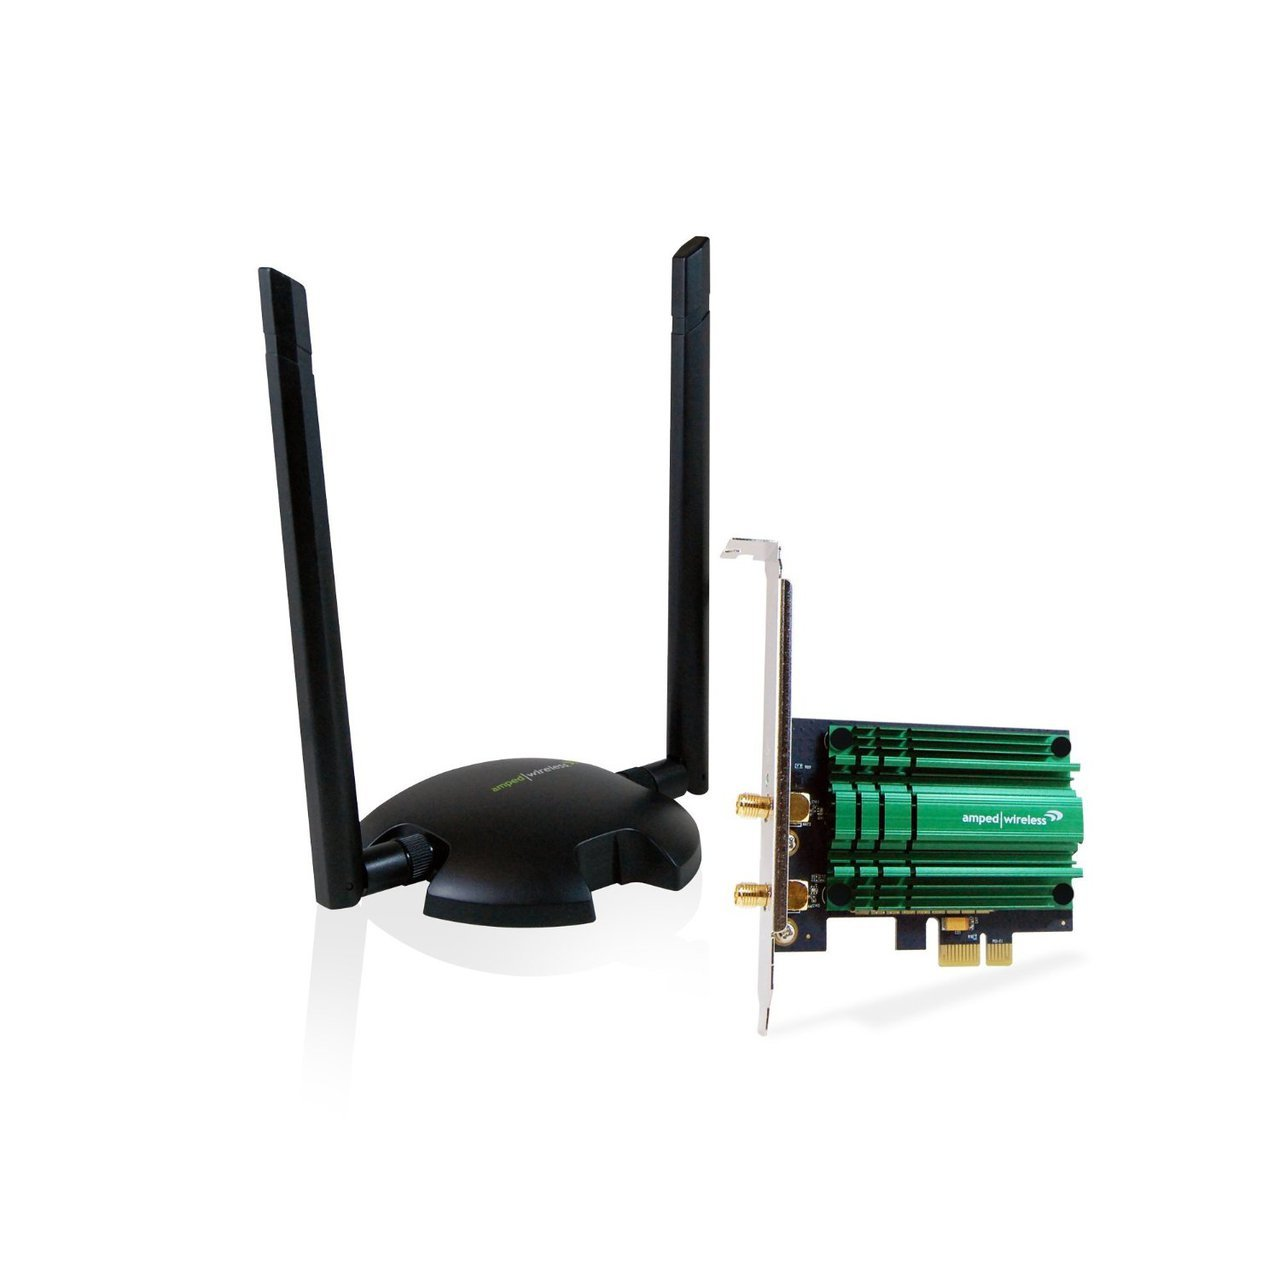 Amped Wireless High Power AC1200 Wi-Fi PCI-E Adapter (PCI20E)